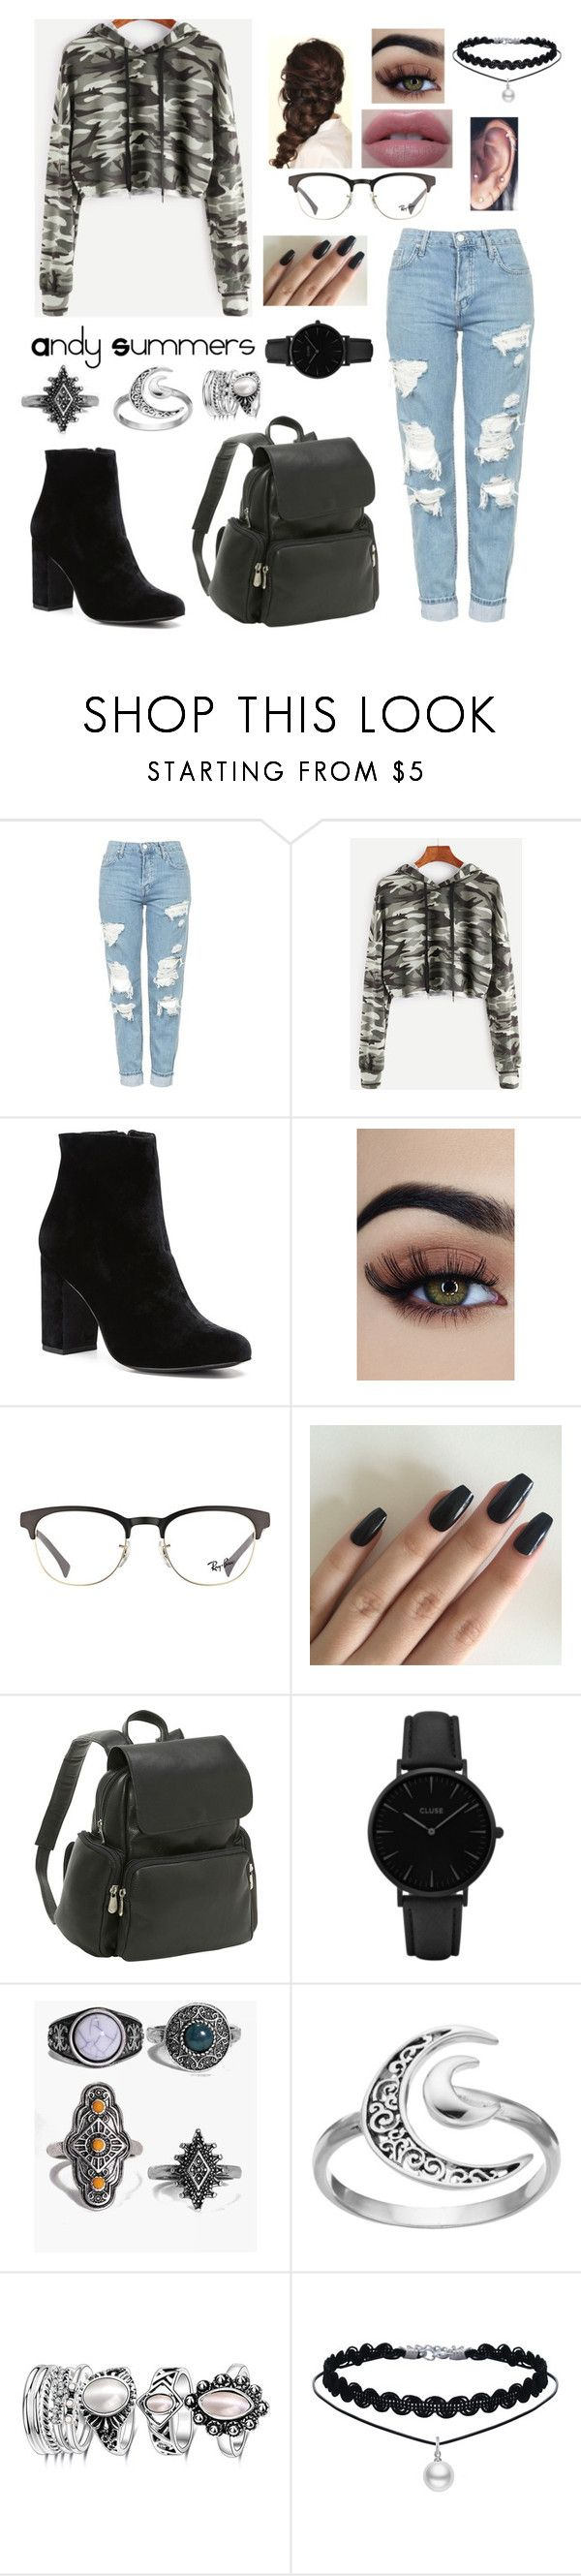 """""""Andy Summers"""" by gissell-nunez ❤ liked on Polyvore featuring Topshop, Witchery, Disney, Ray-Ban, Le Donne, CLUSE, Boohoo and Primrose"""